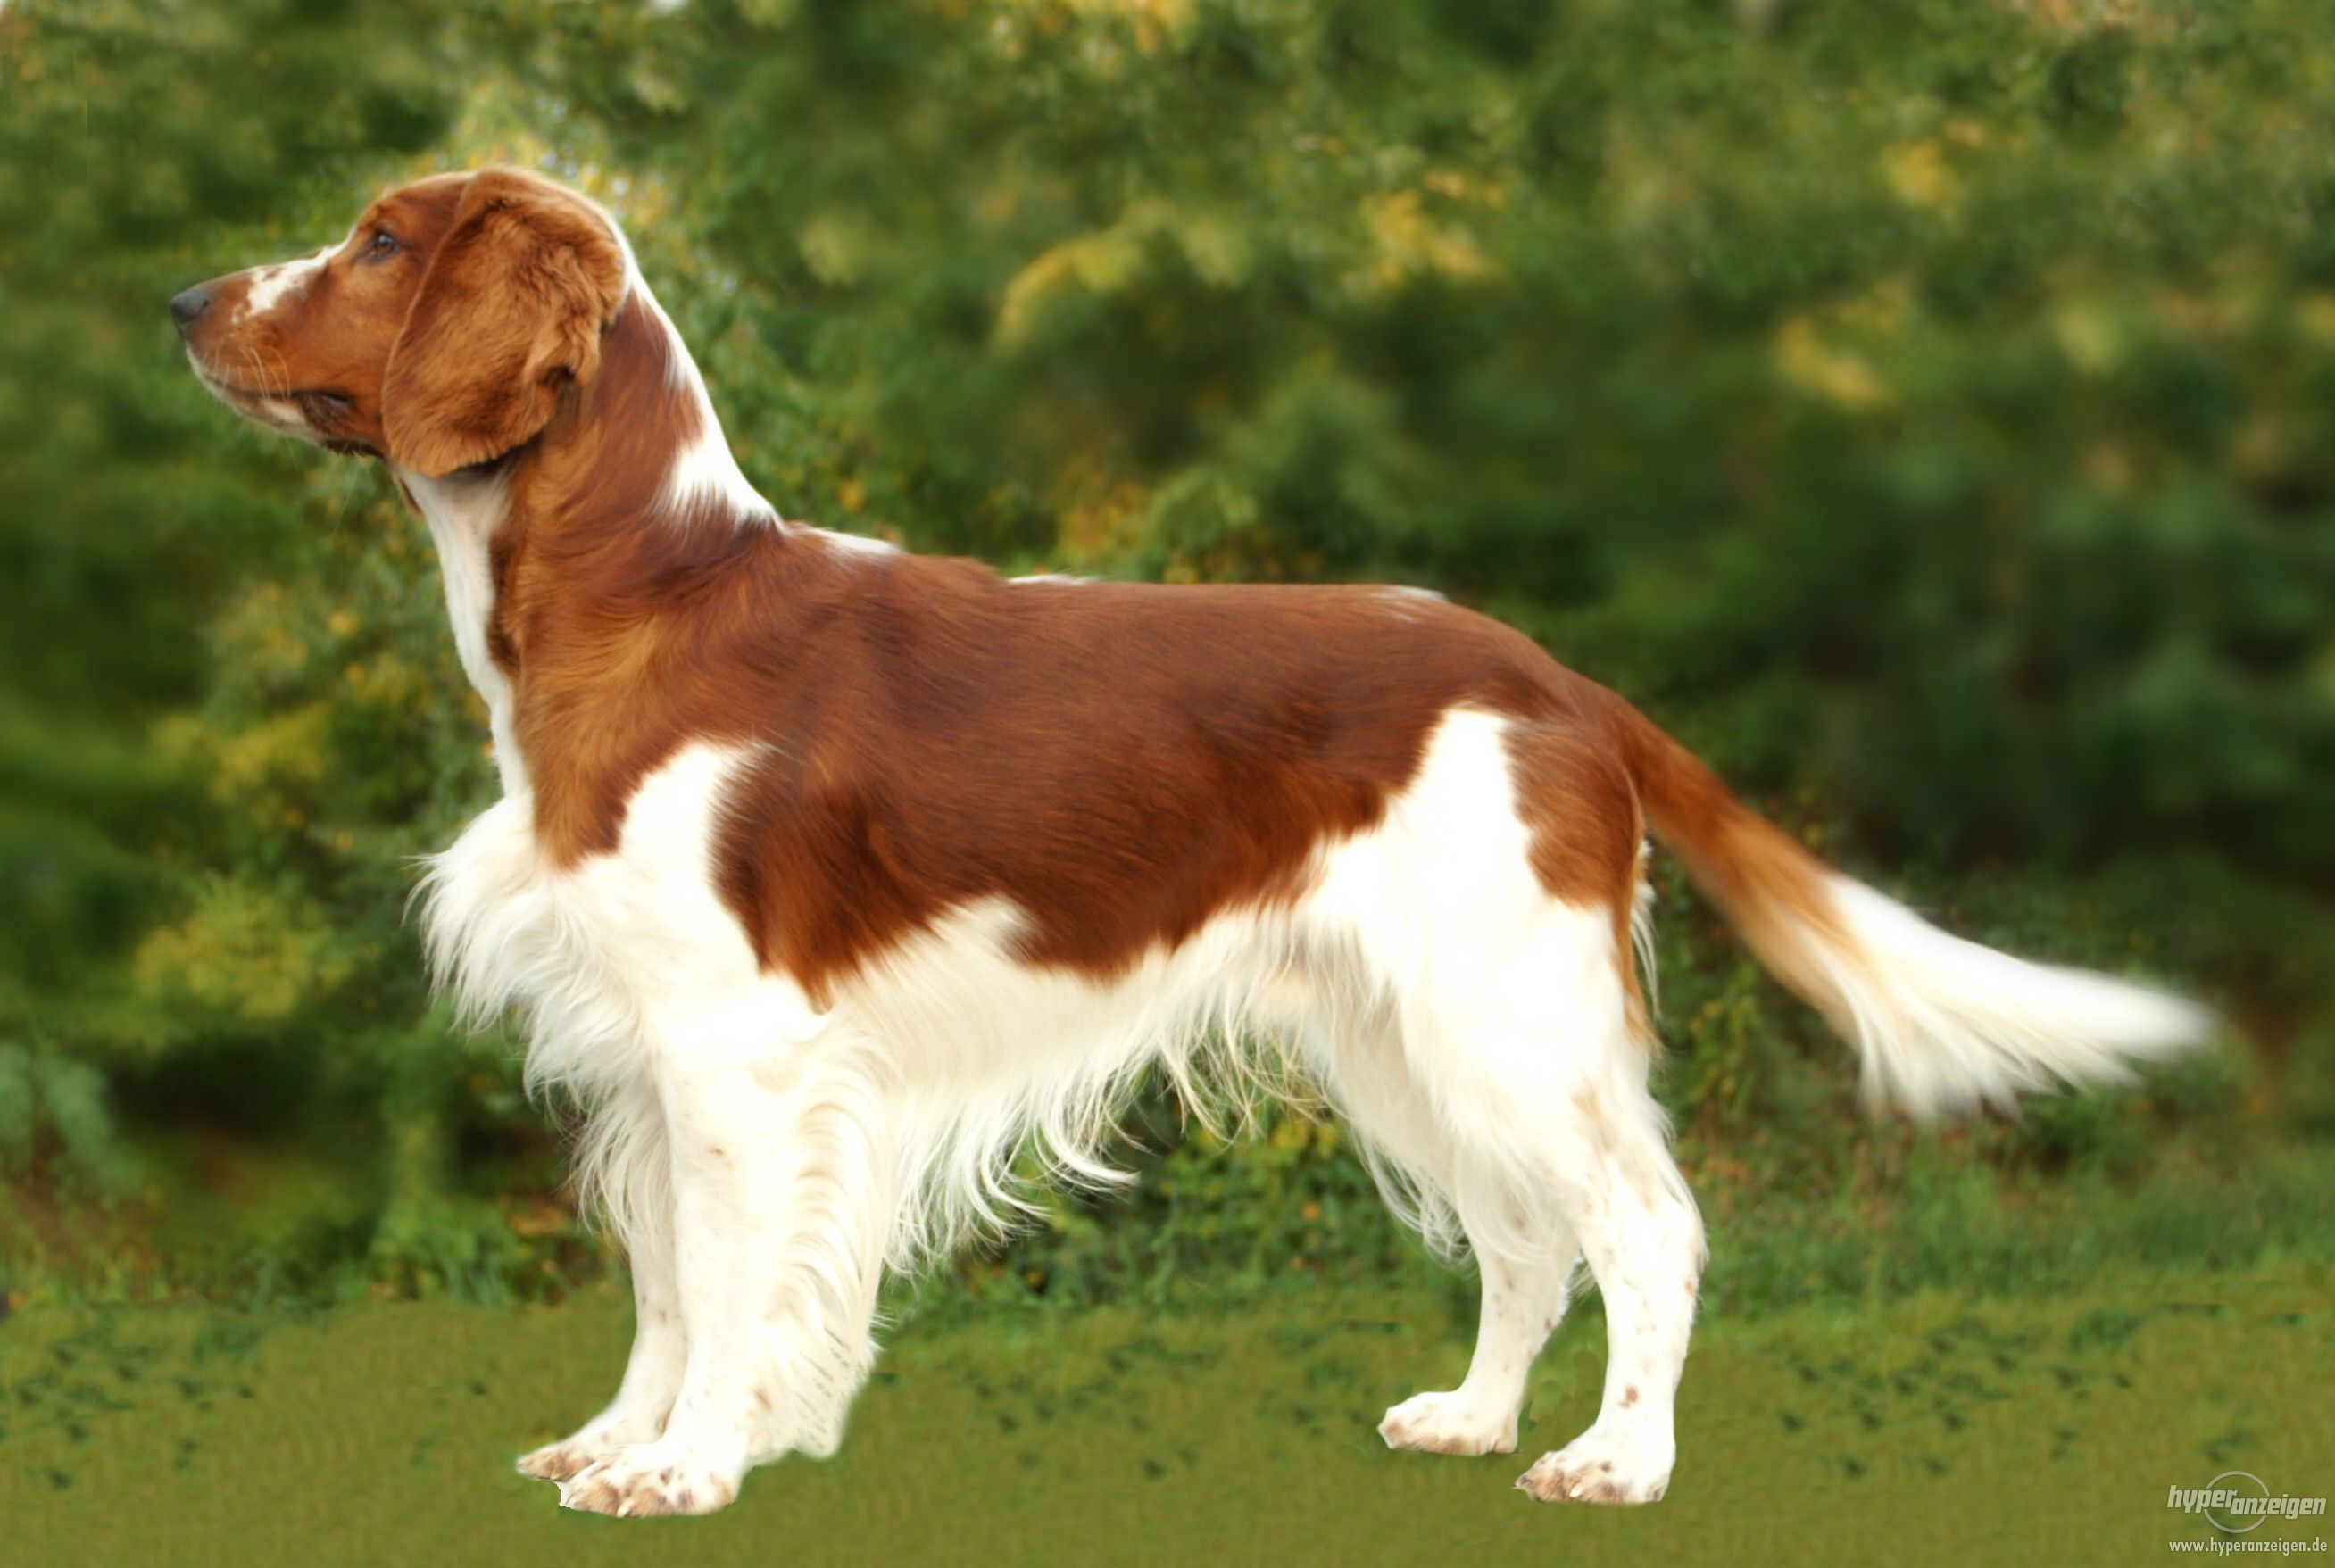 #WellPets The breed of Welsh Springer Spaniel is active, a loyal and loving temperament, making it an ideal part of the family as well as an excellent hunting companion.